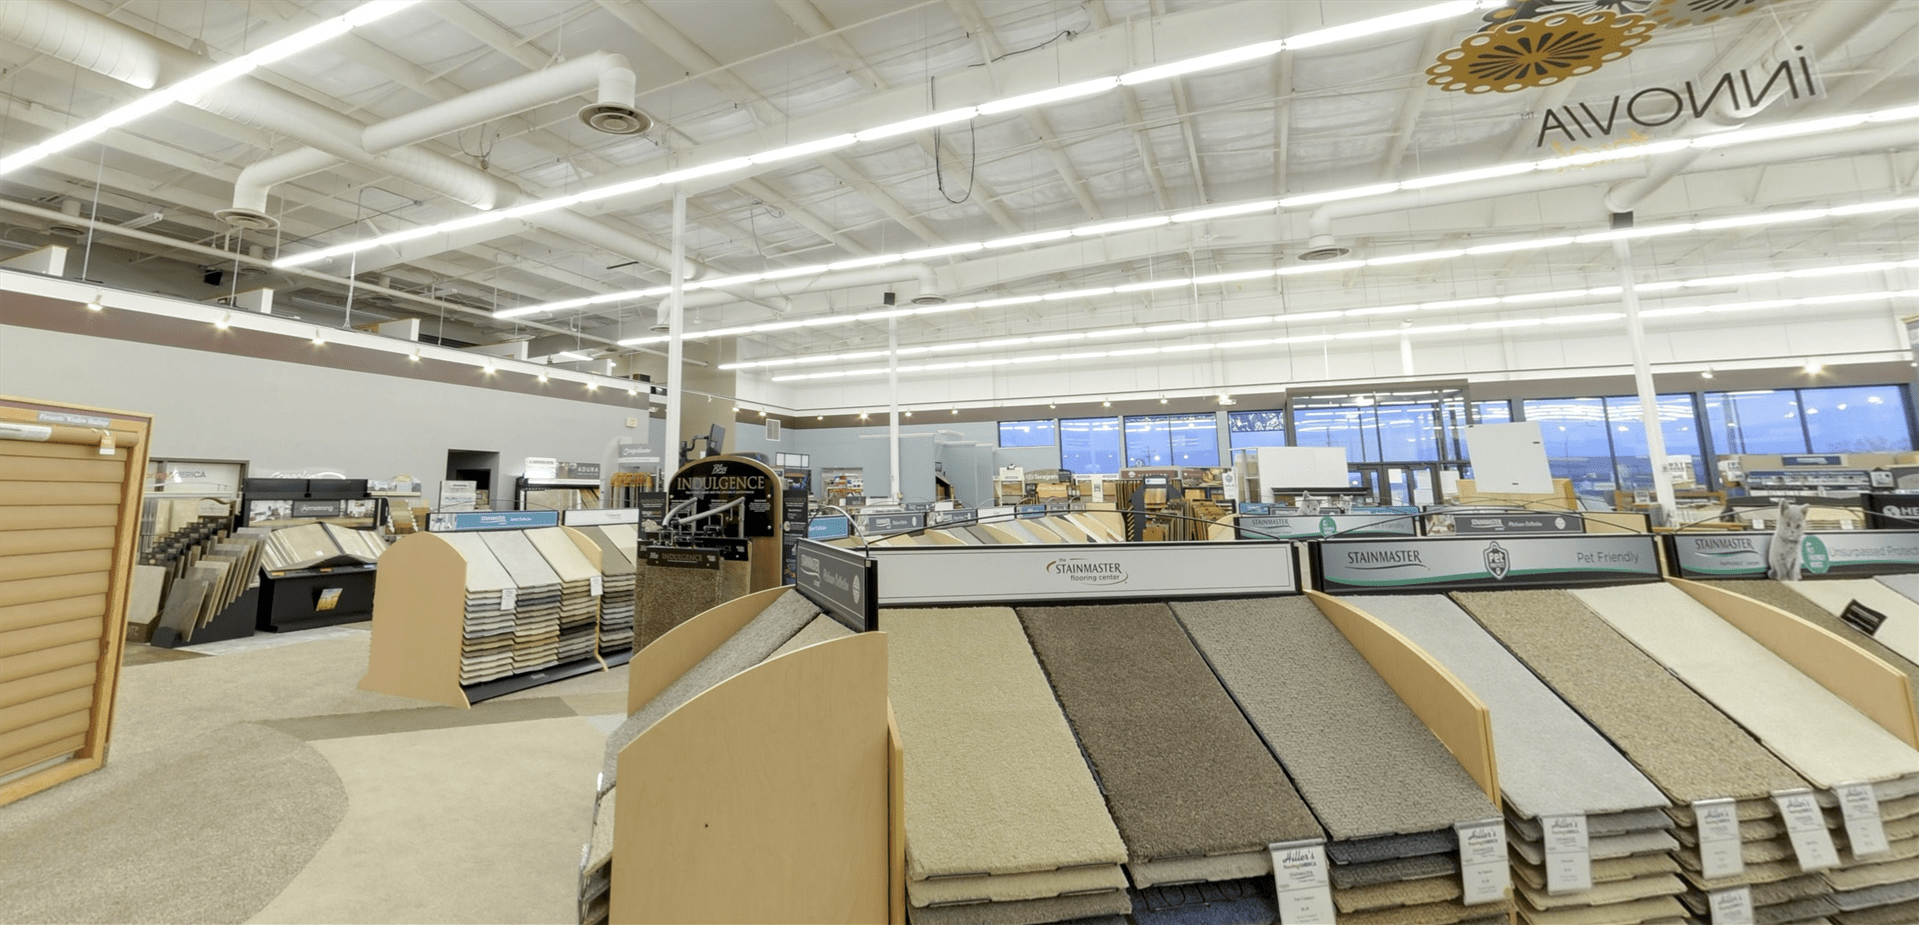 Stainmaster carpet for your North Dakota business from Hiller Stores